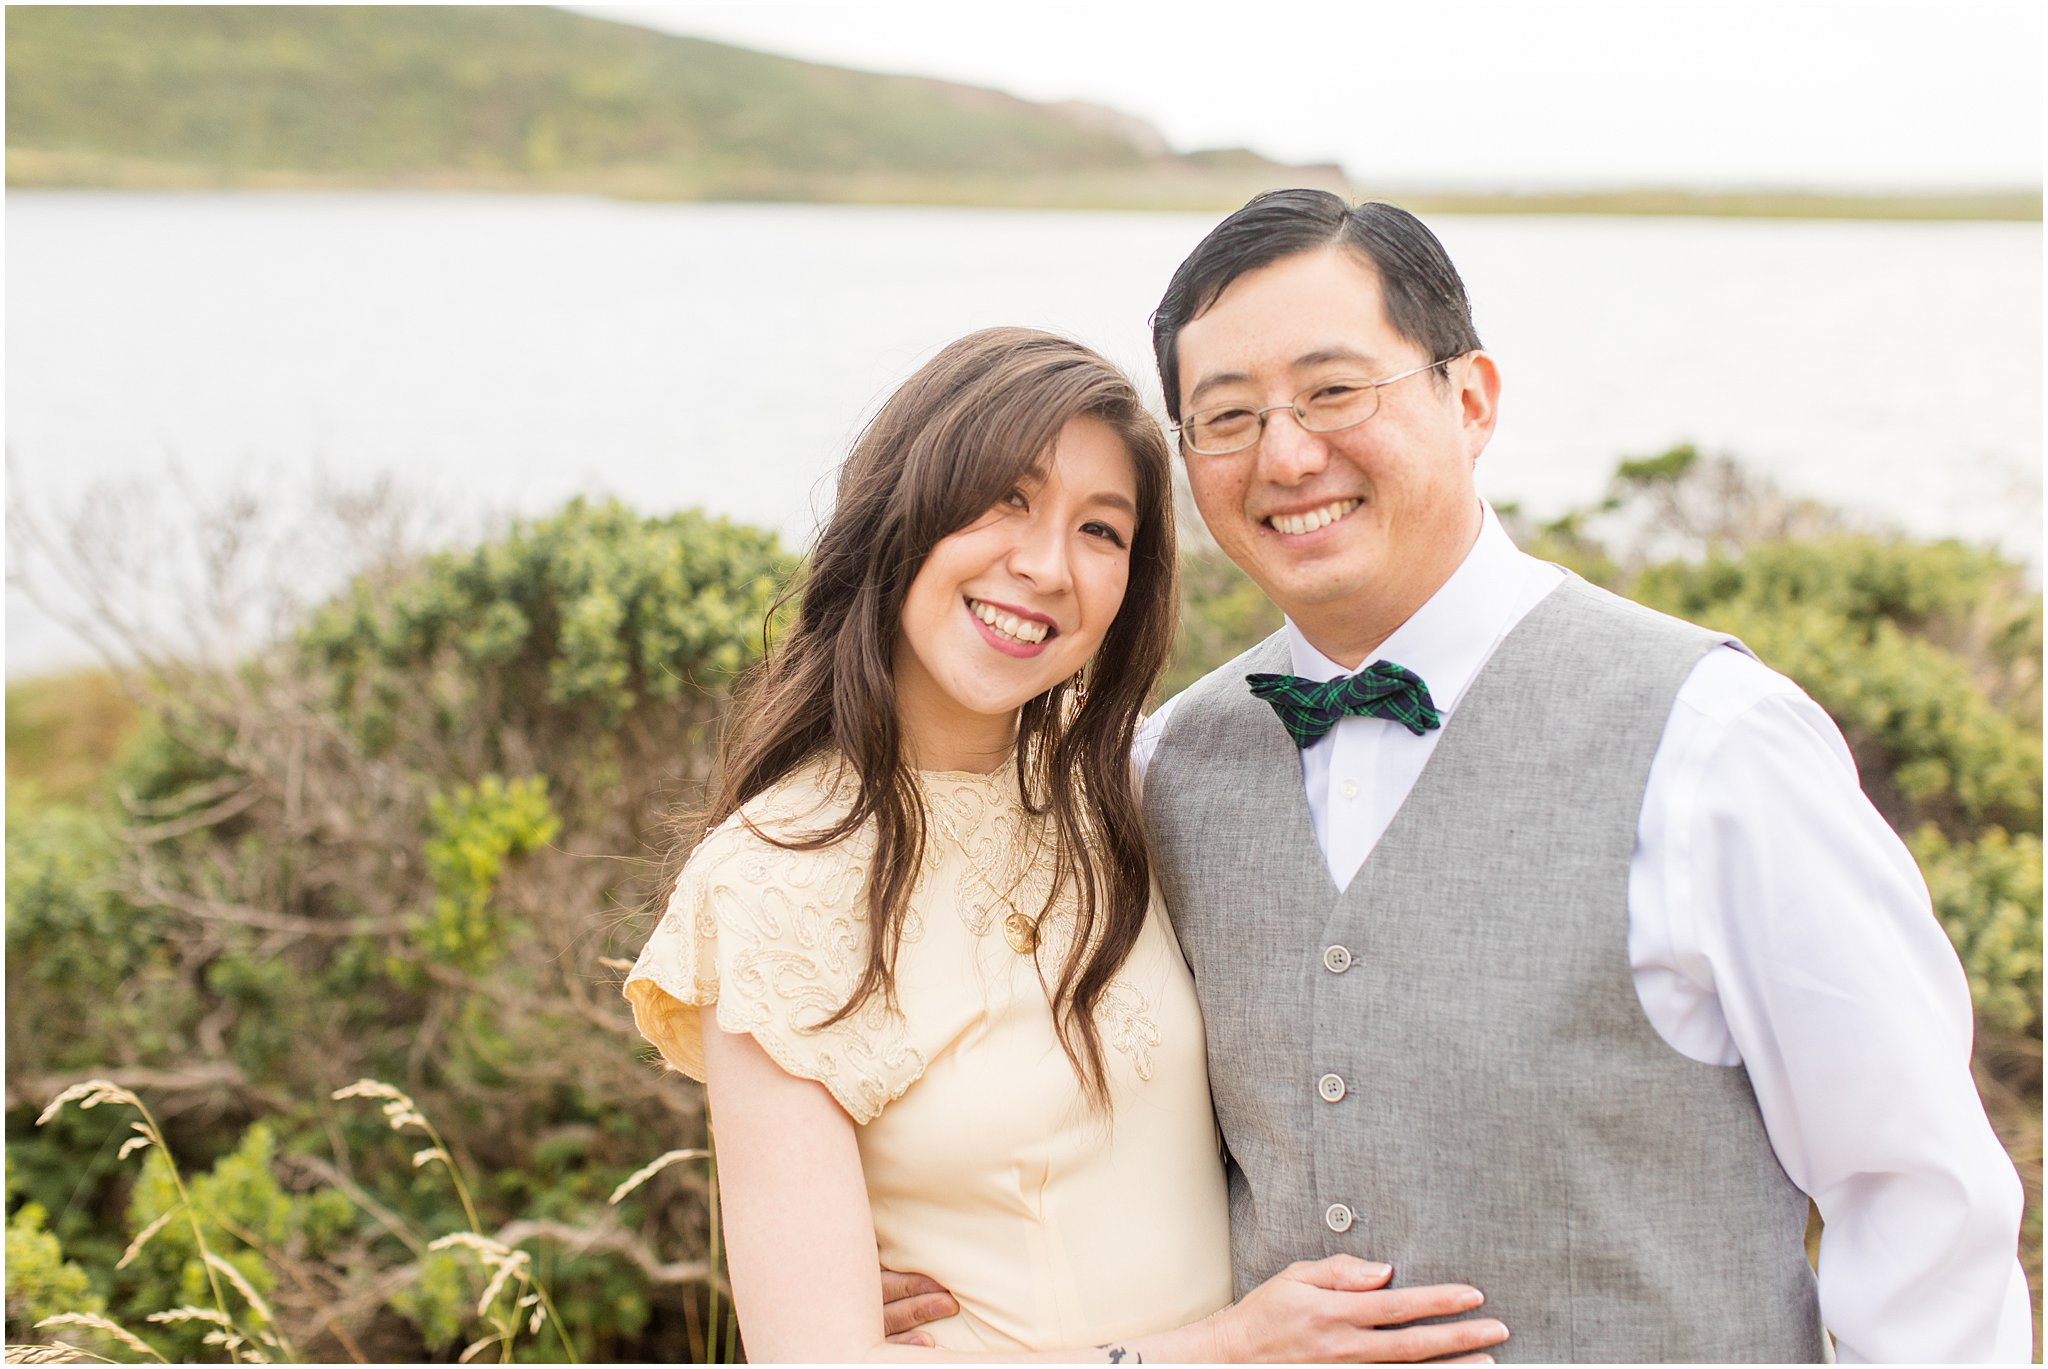 2019 marin headlands san francisco engagement session bay area wedding photographer_0001.jpg